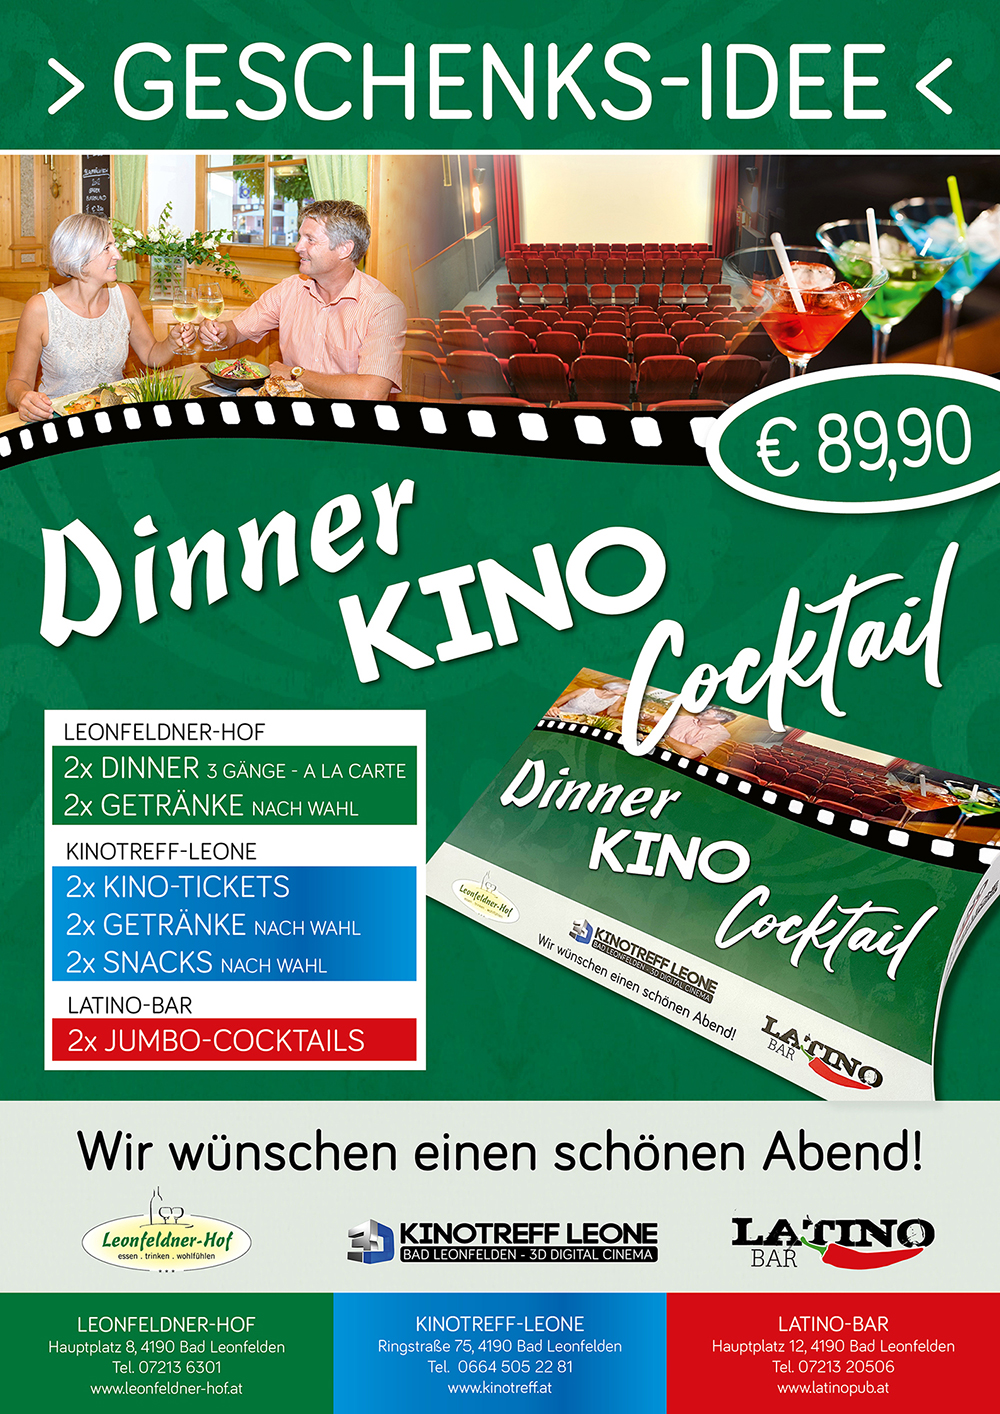 Dinner Kino Cocktail Plakat